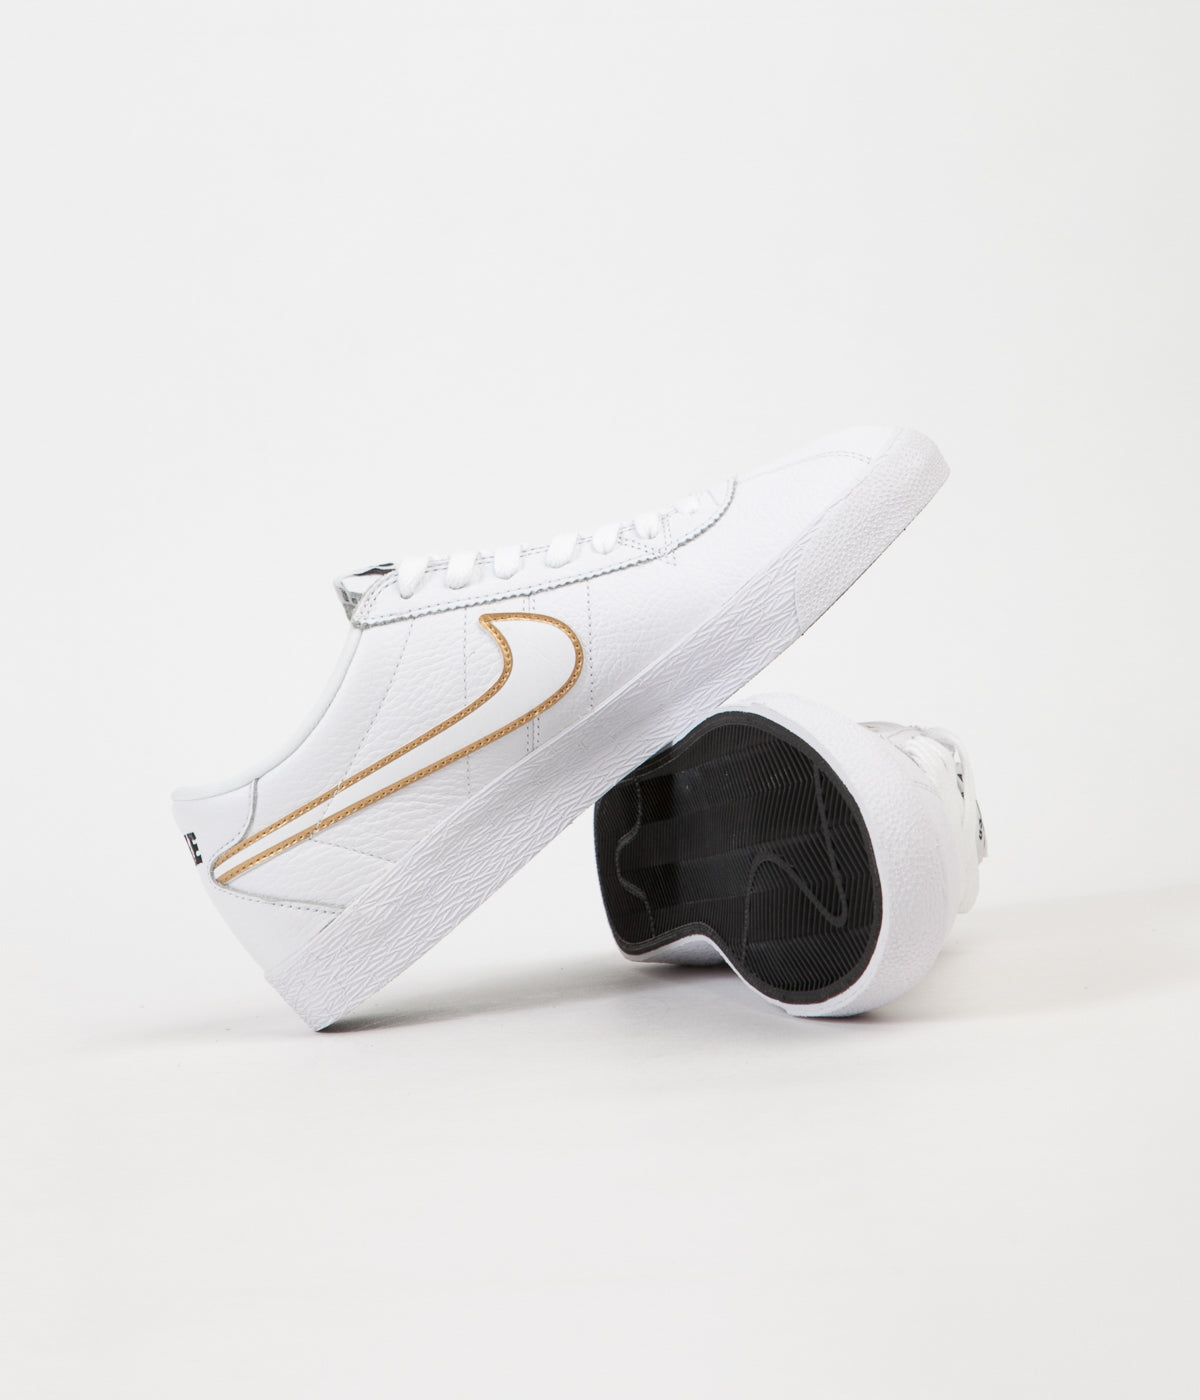 Rey Lear temperamento patio  Nike SB Bruin Premium SE Shoes - White / White - Metallic Gold - Black |  Flatspot